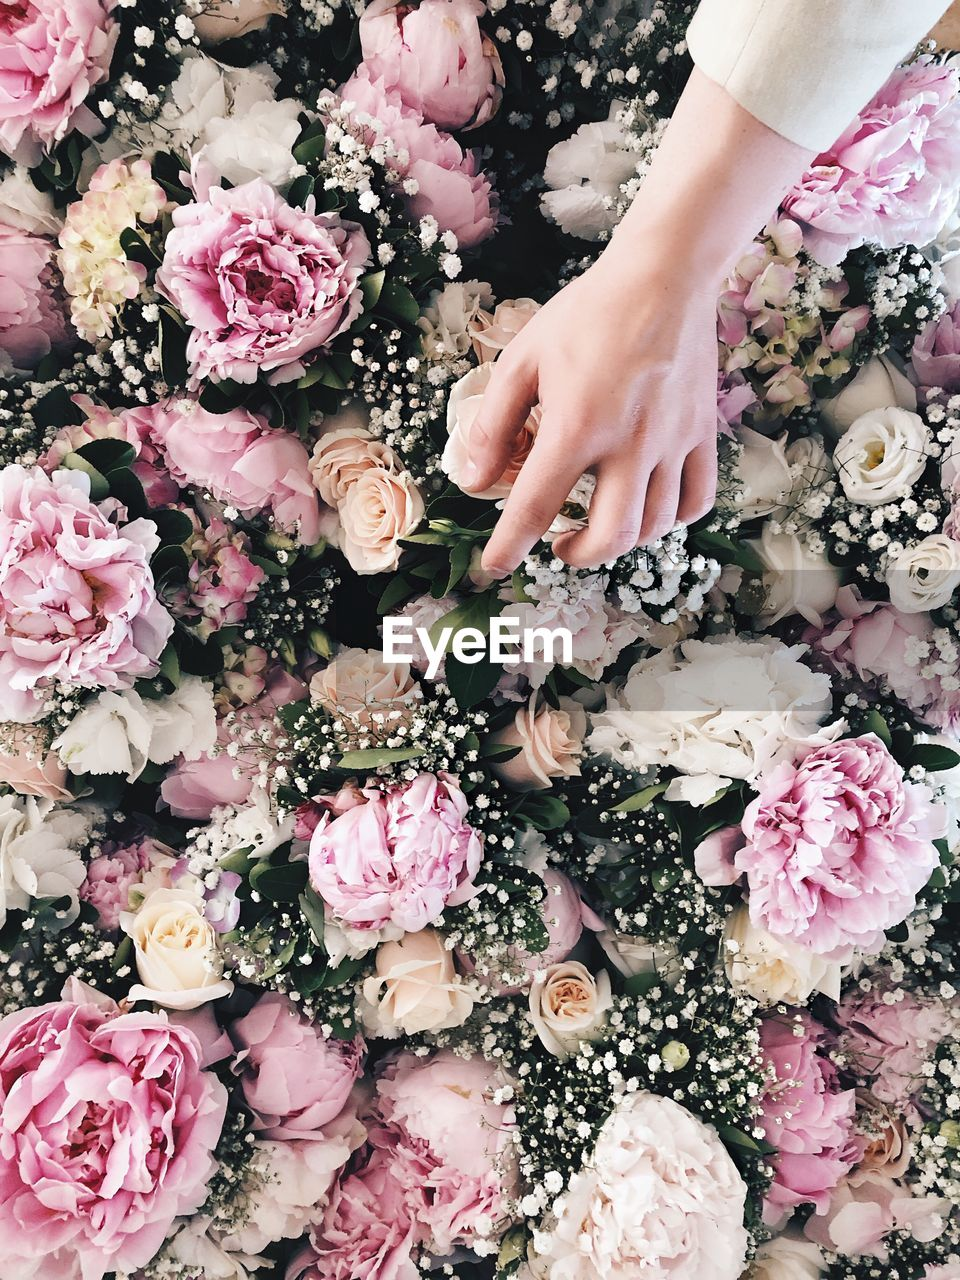 flowering plant, flower, one person, freshness, hand, plant, human hand, beauty in nature, real people, human body part, rose, vulnerability, pink color, petal, rose - flower, fragility, nature, bouquet, flower head, flower arrangement, finger, softness, human limb, bunch of flowers